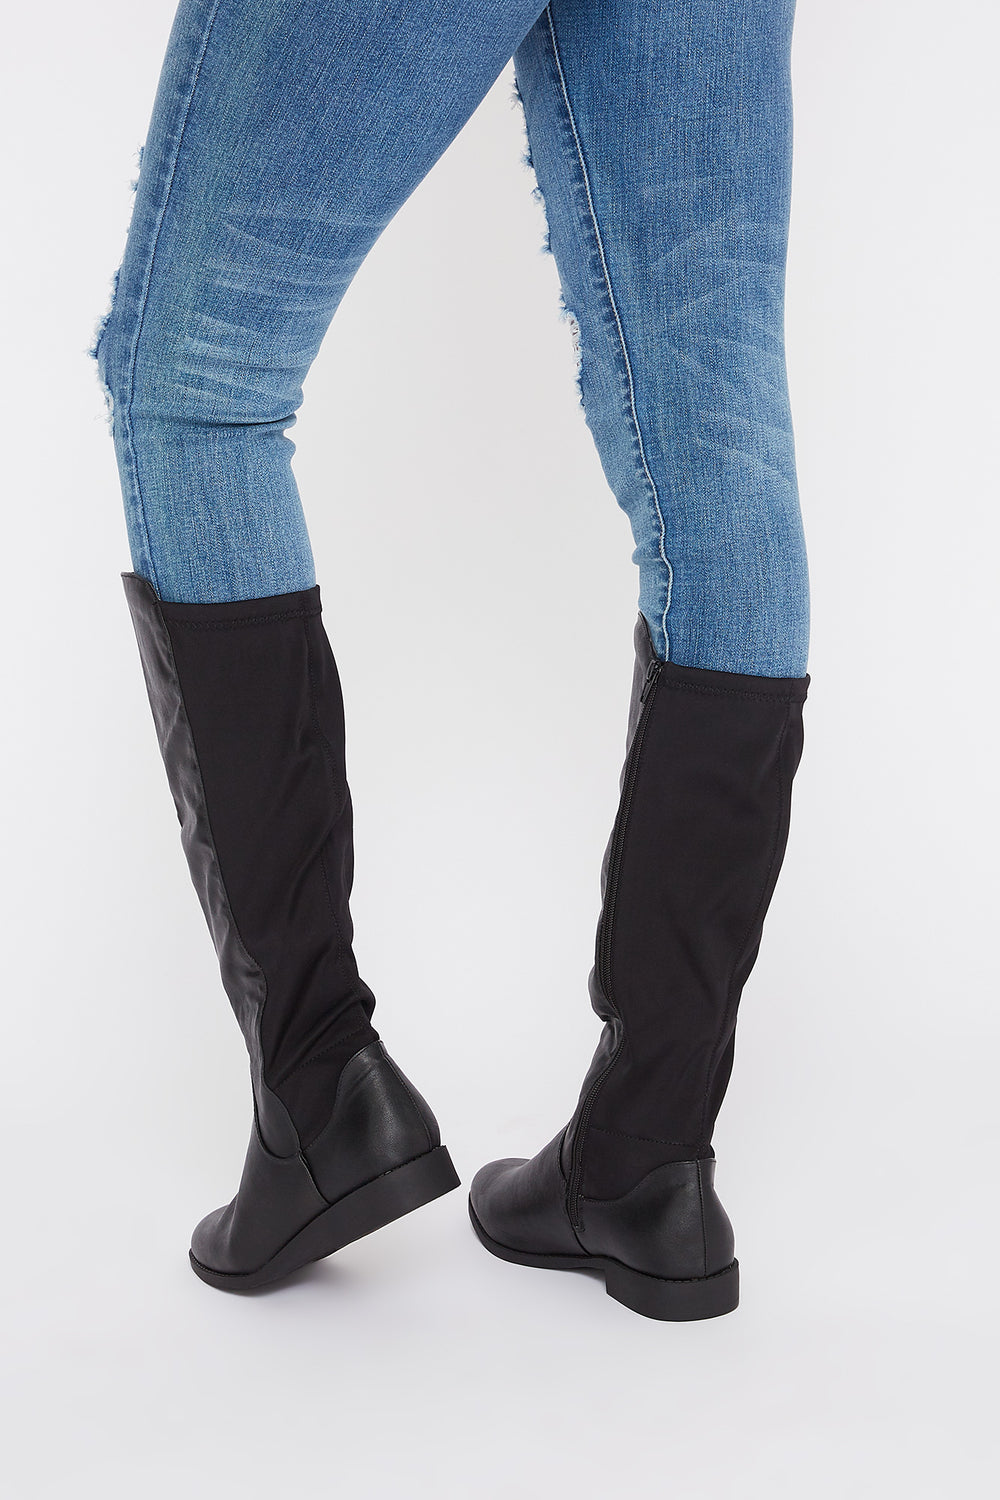 Contrast Knee High Boot Jet Black